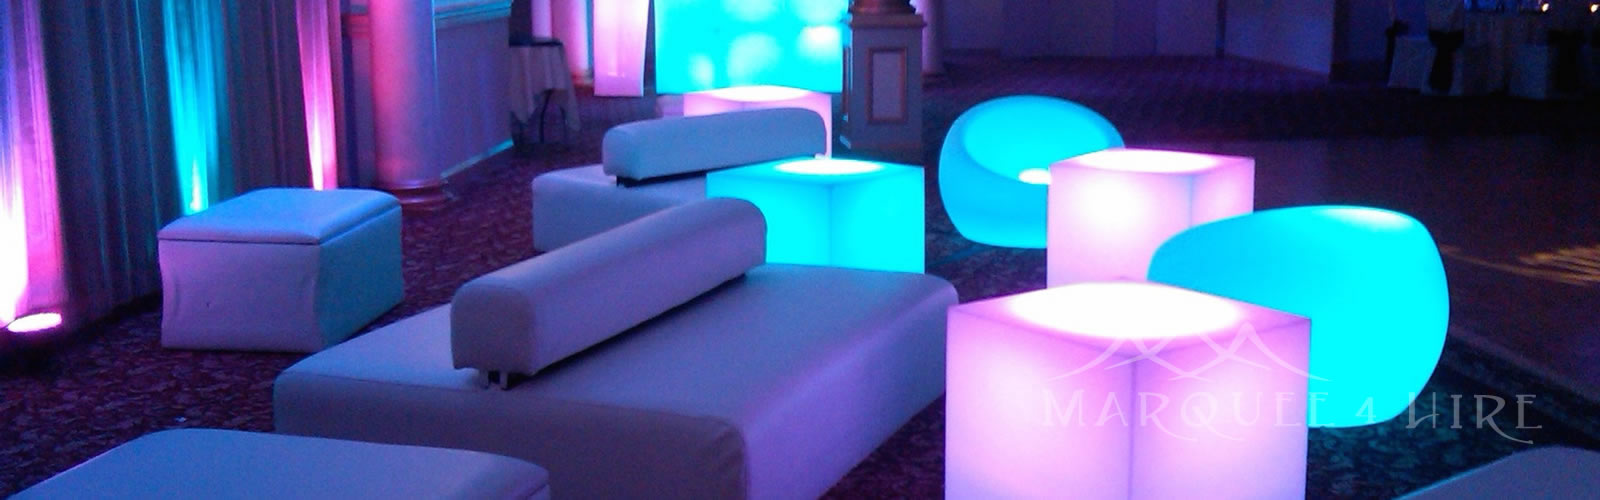 Glow Furniture Marquee Hire Sydney Weddings Party And Events Marquee 4 Hire